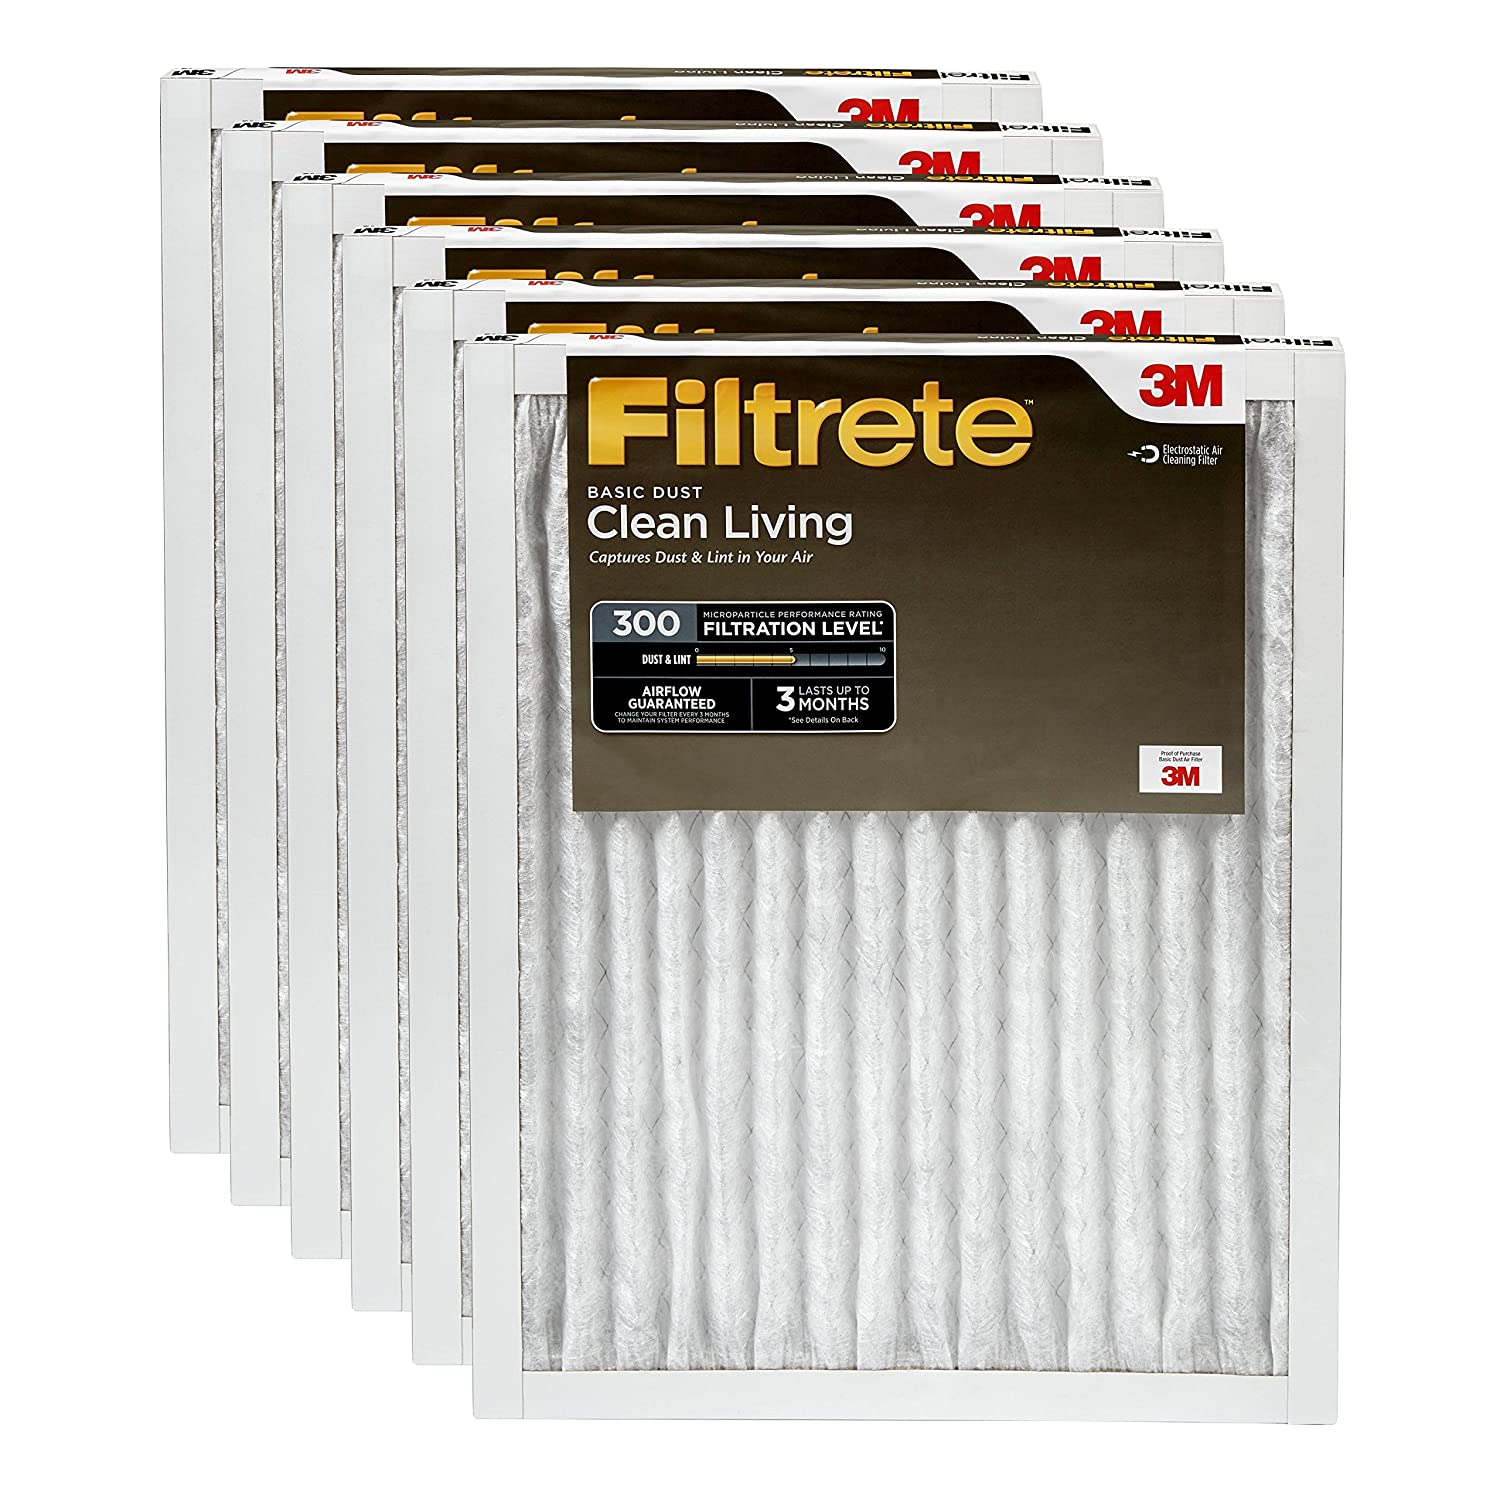 1. Filtrete 20x30x1, AC Furnace Air Filter, MPR 300, Clean Living Basic Dust, 6-Pack